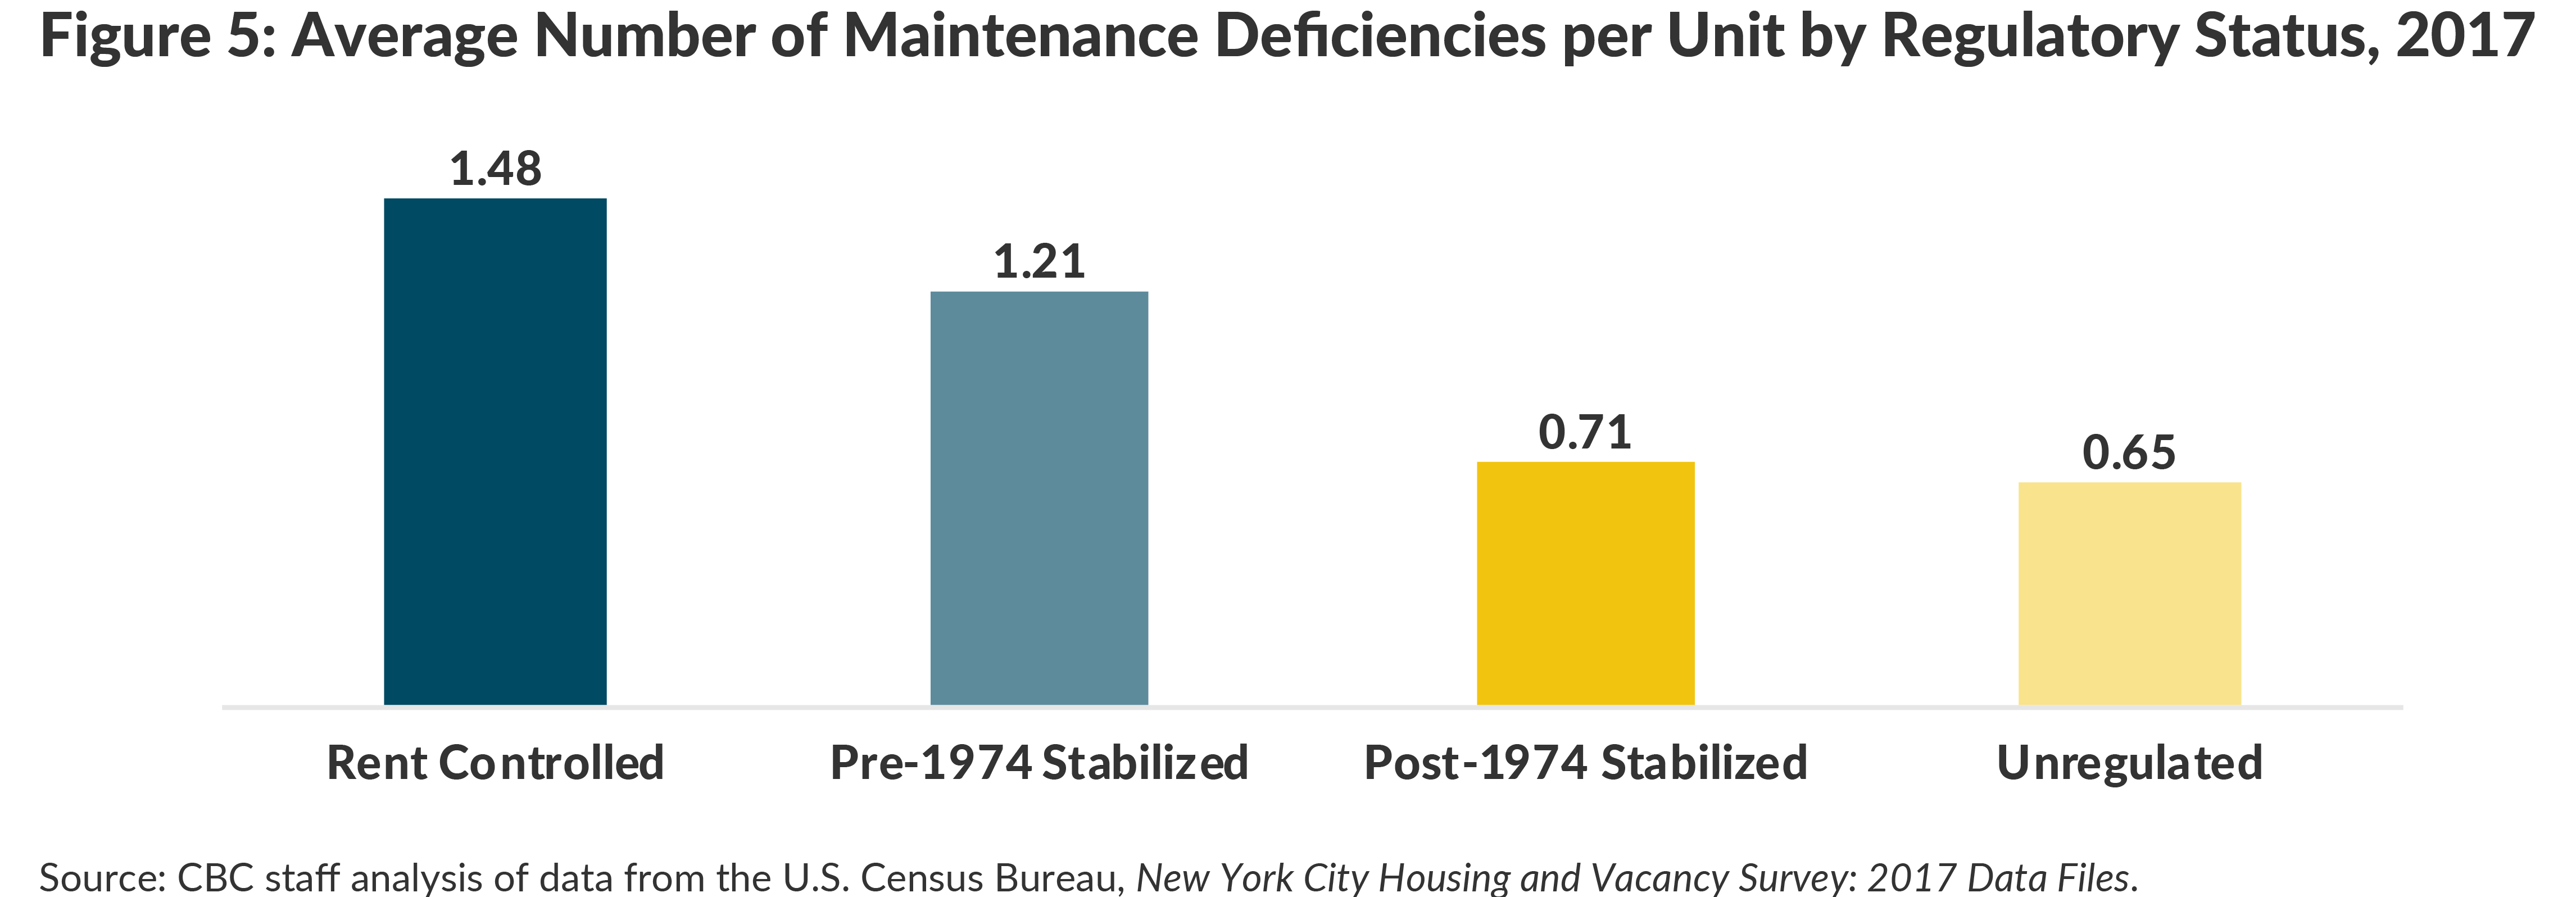 Figure 5: Average Number of Maintenance Deficiencies per Unit by Regulatory Status, 2017